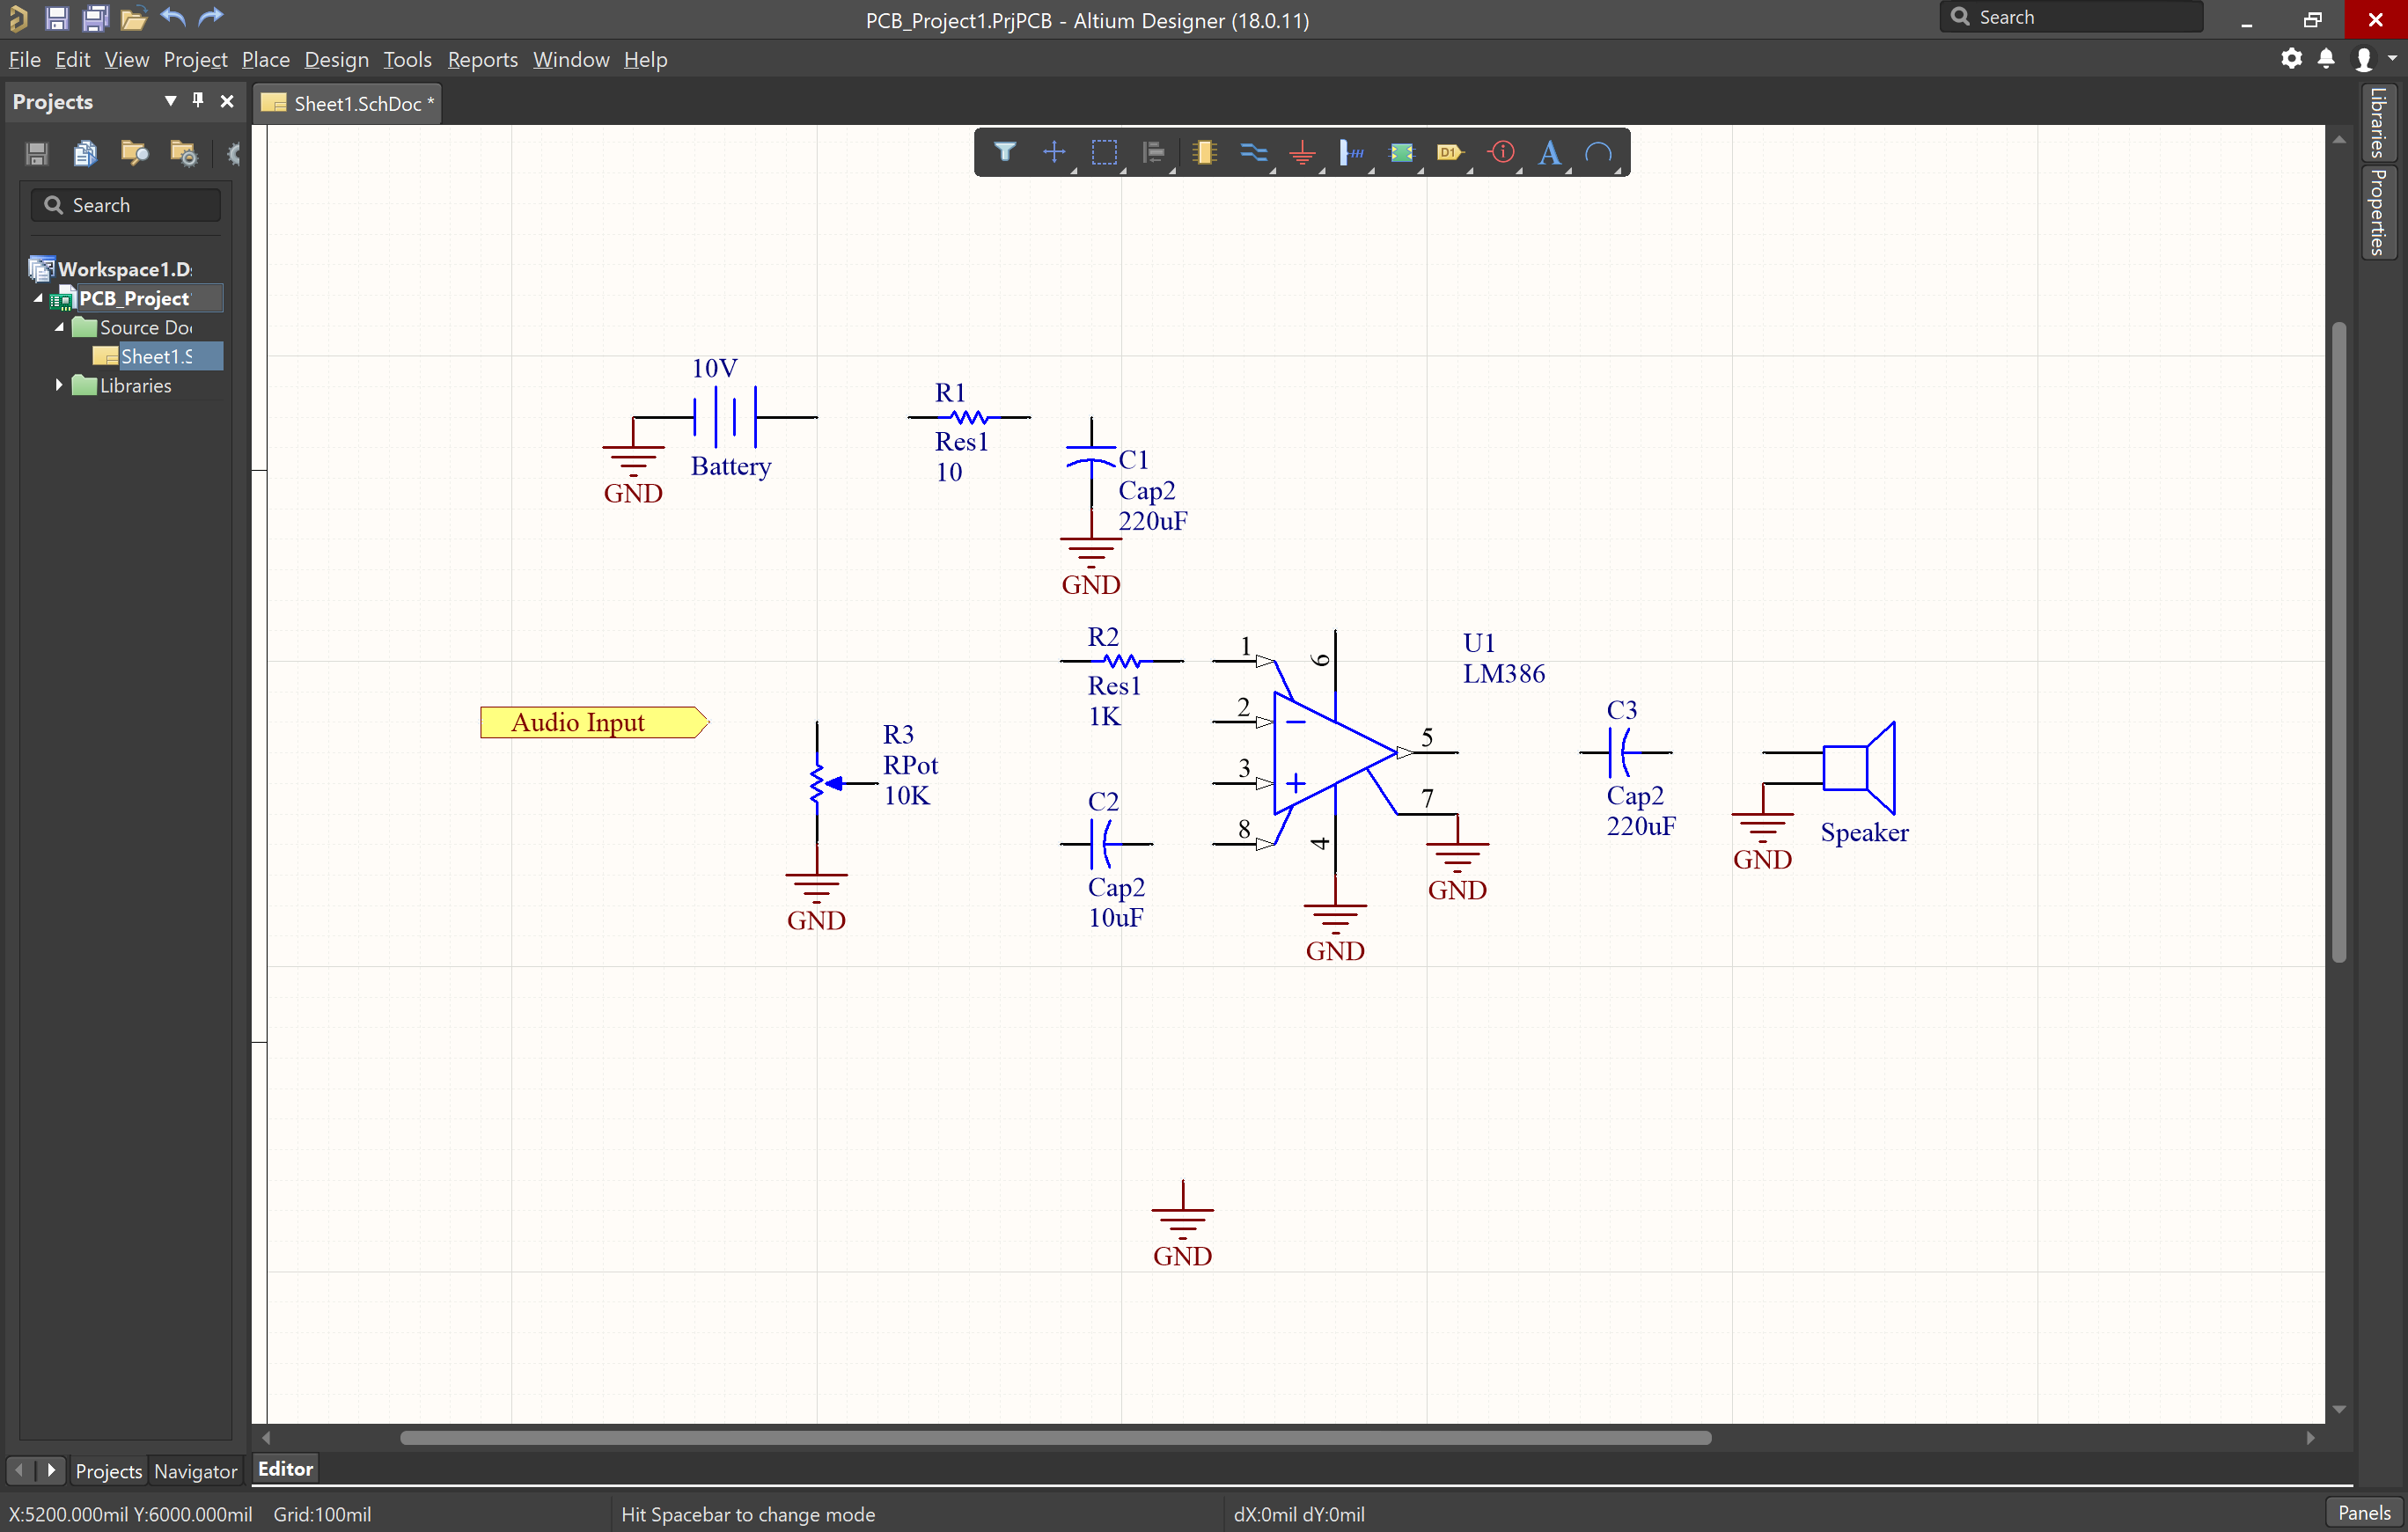 Picture of schematic with grounds added for components